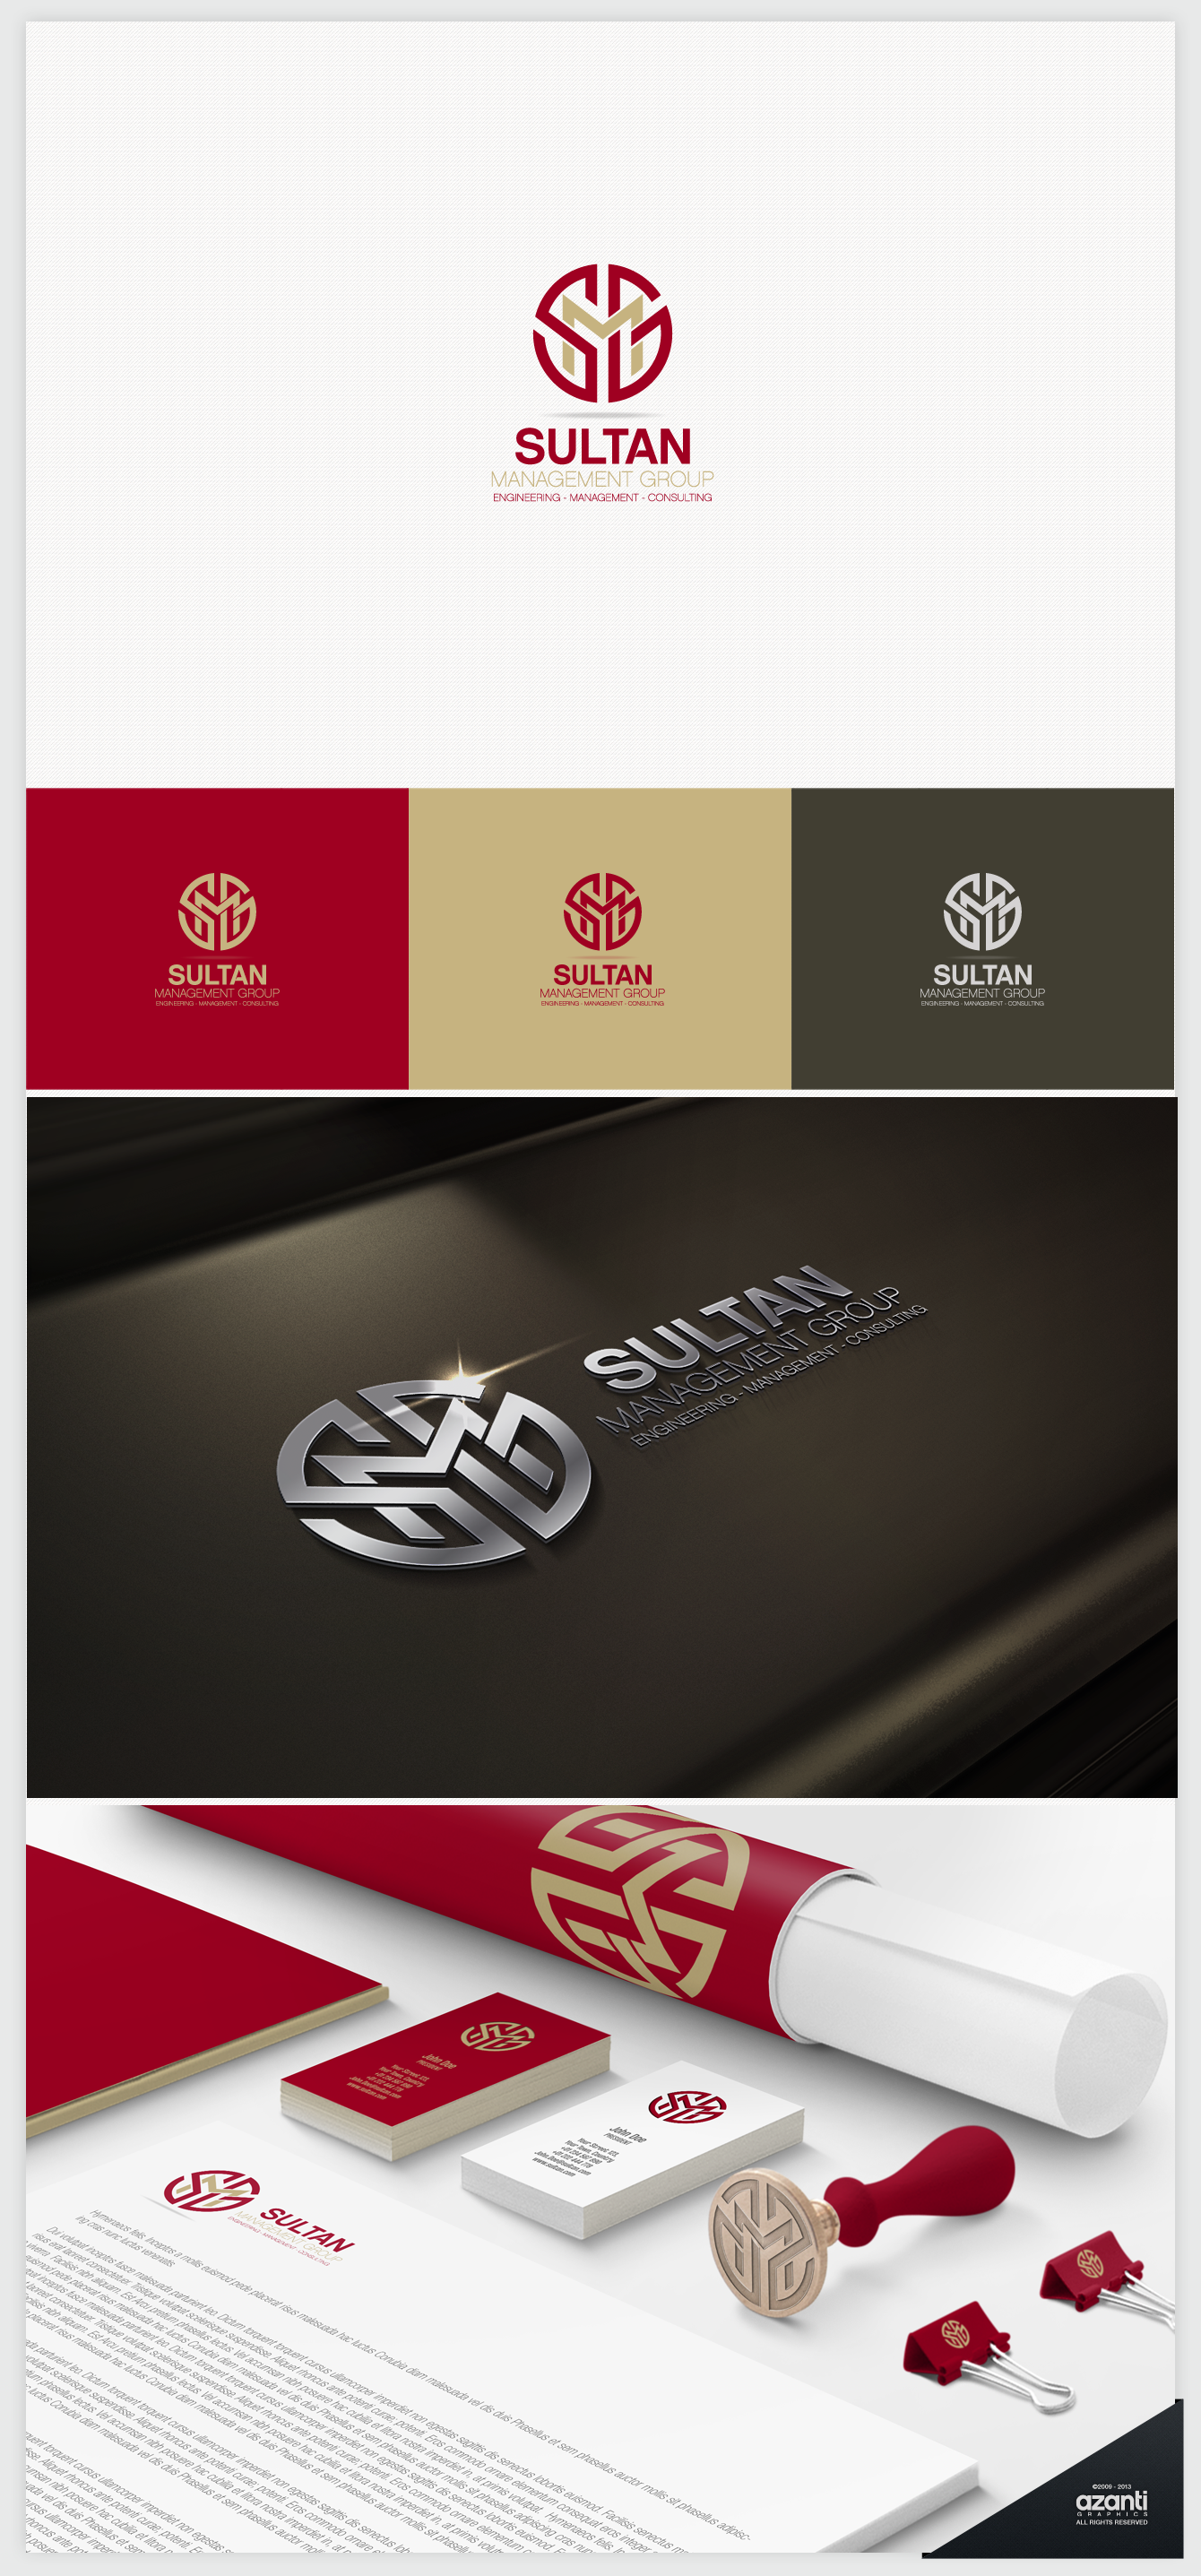 Logo Design Management and Consulting services for the